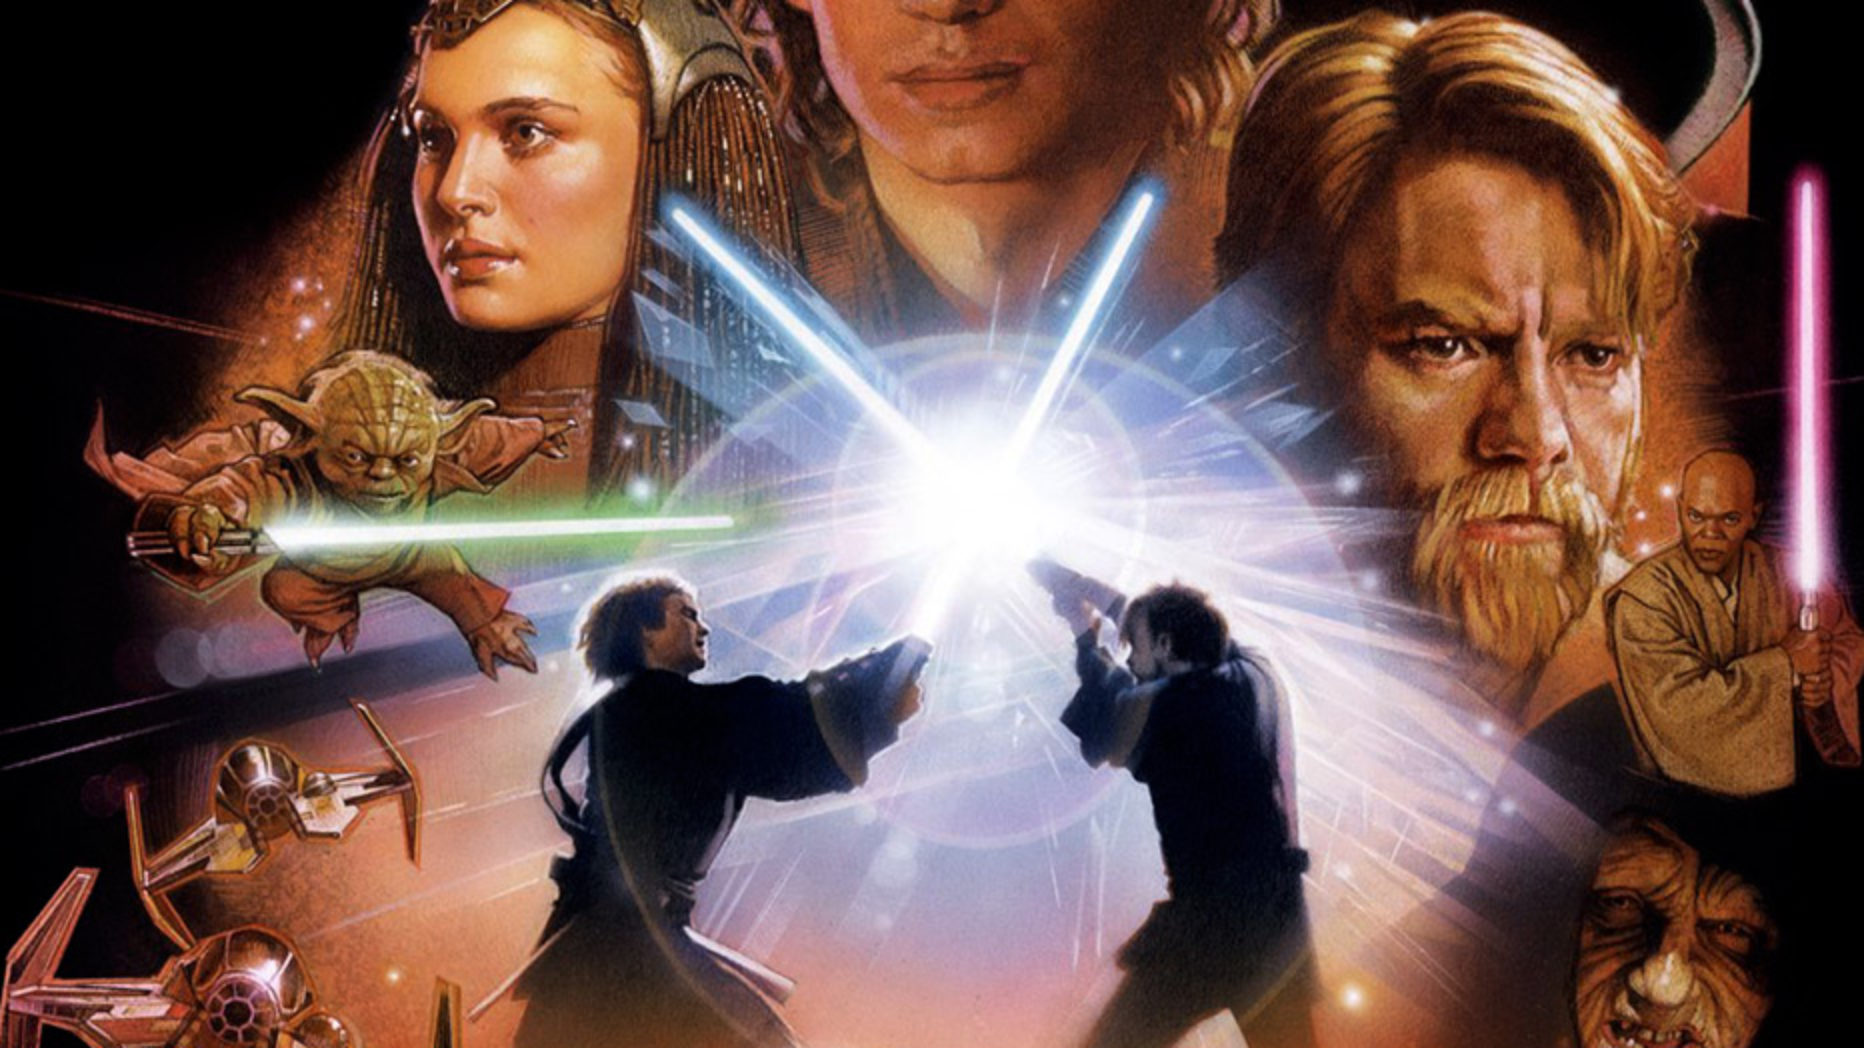 Is Disney Going To Remake The Star Wars Prequels?